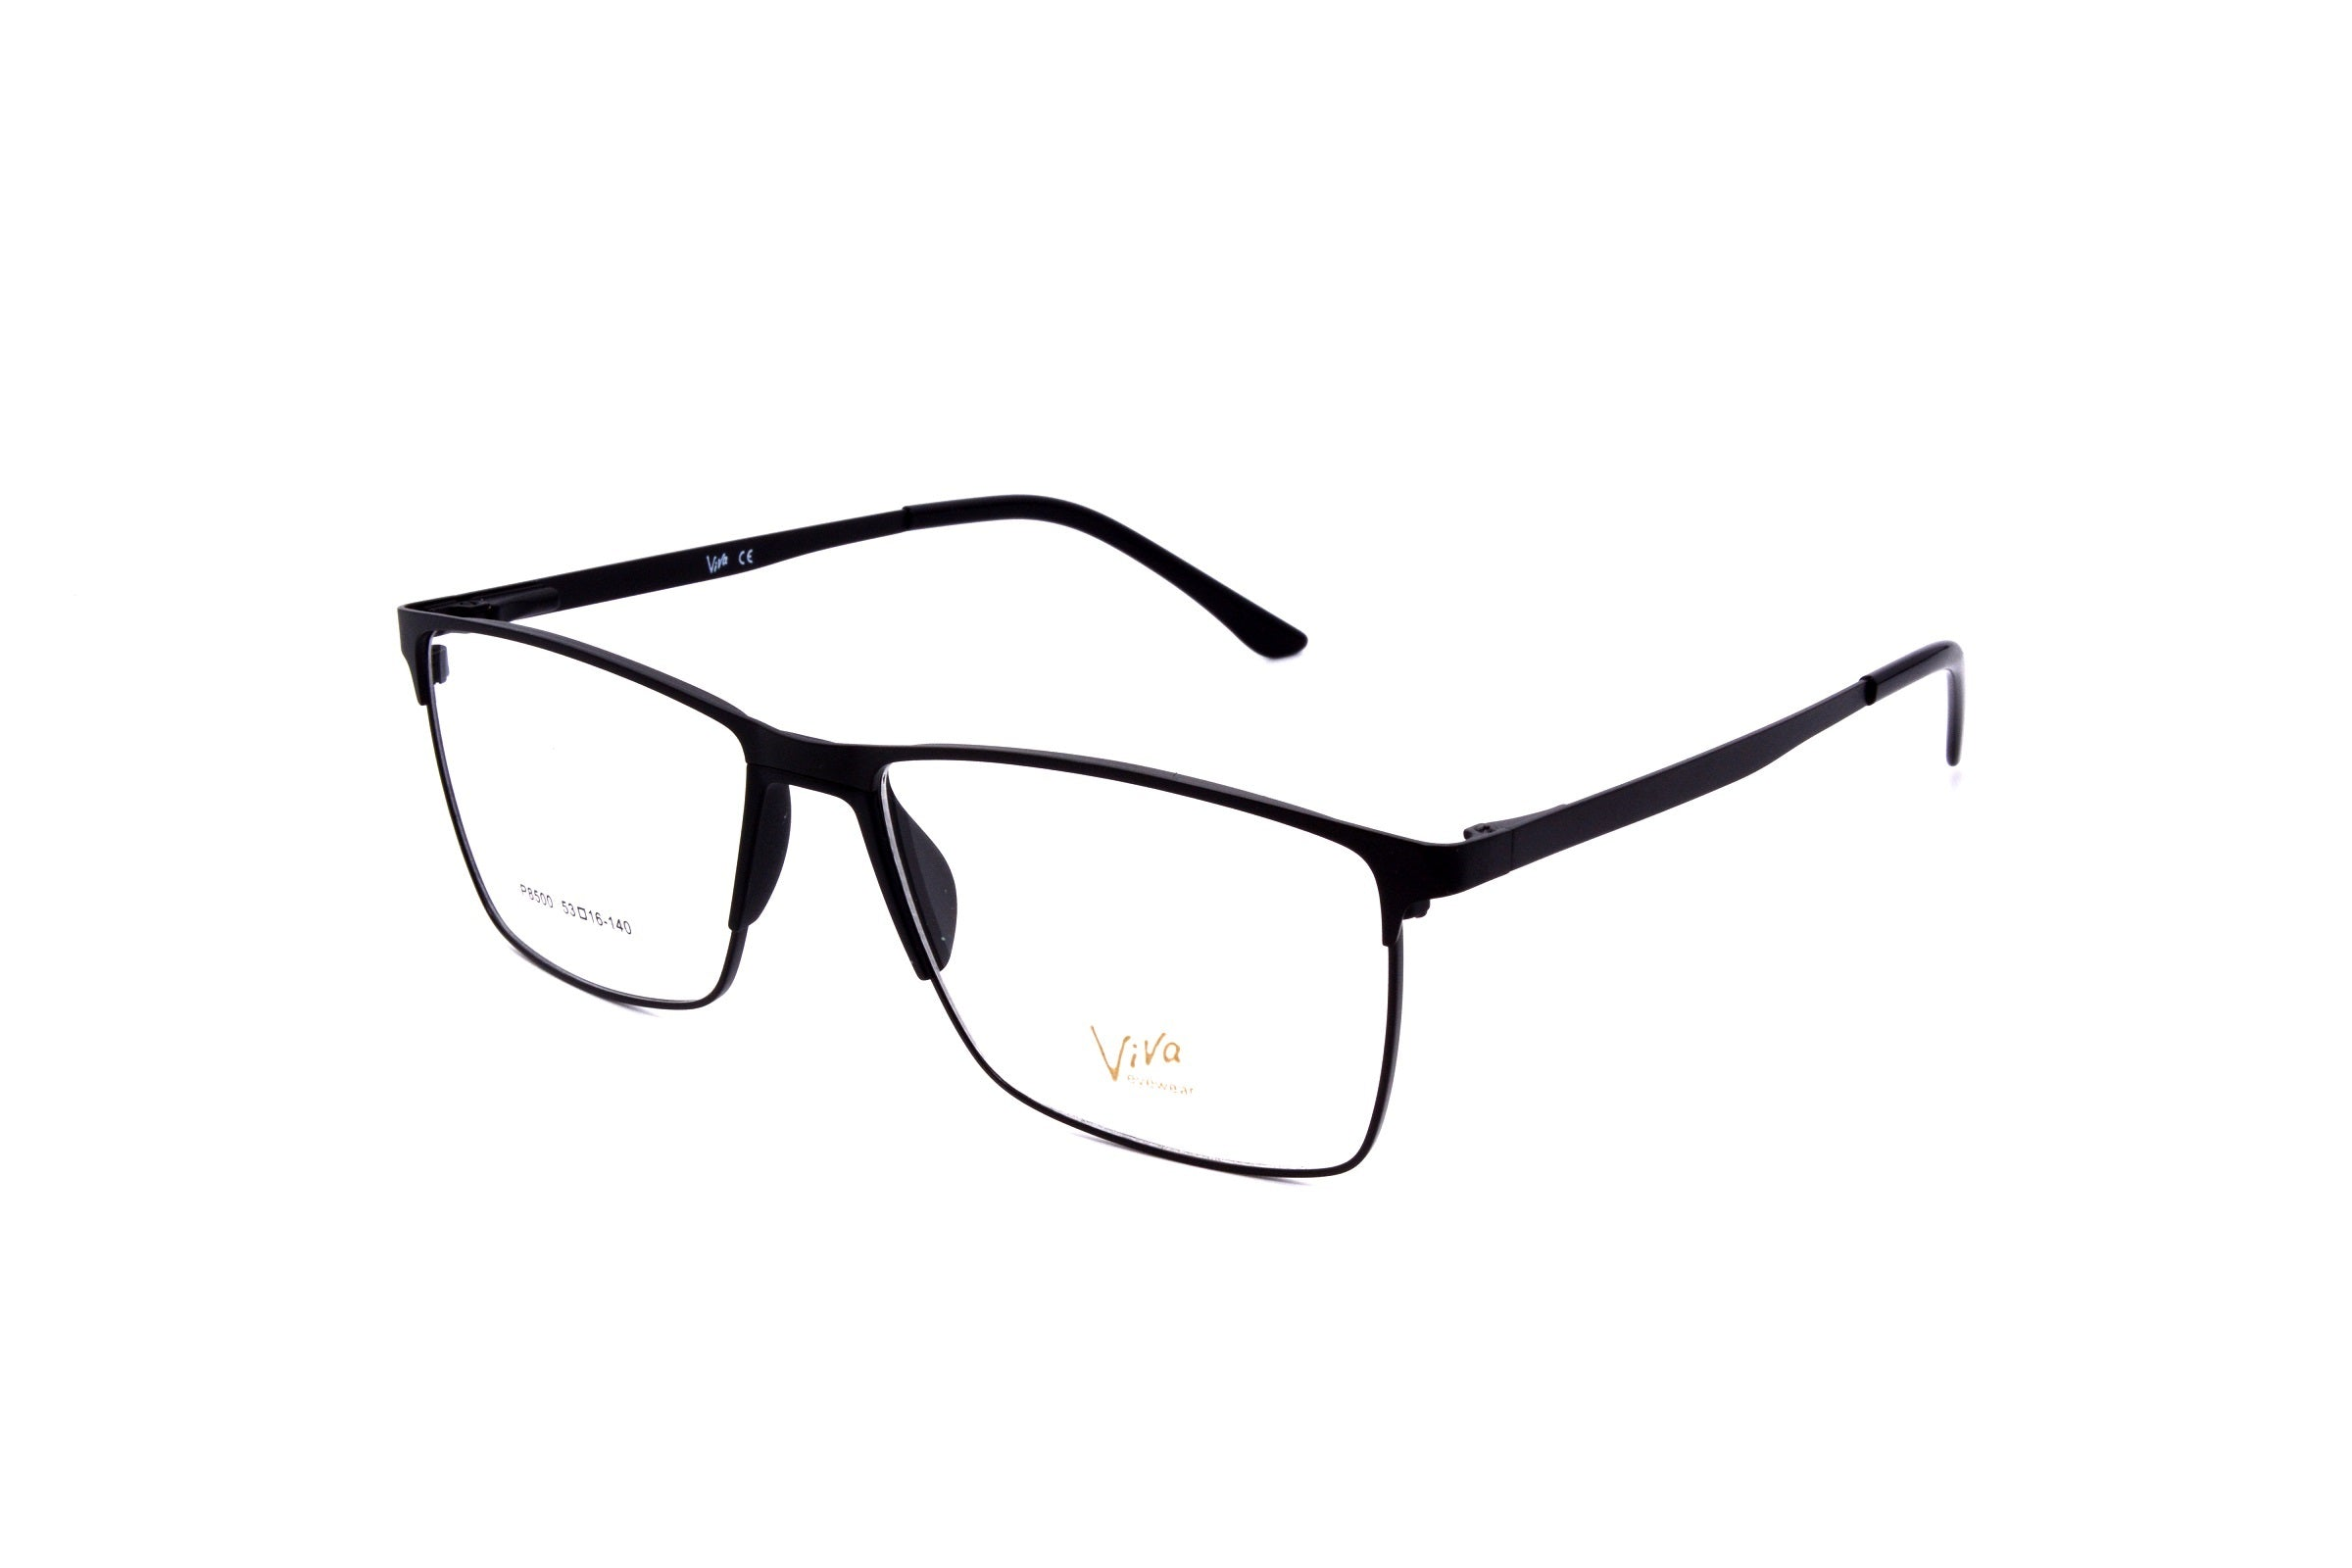 Viva eyewear 8500, M1 - Optics Trading